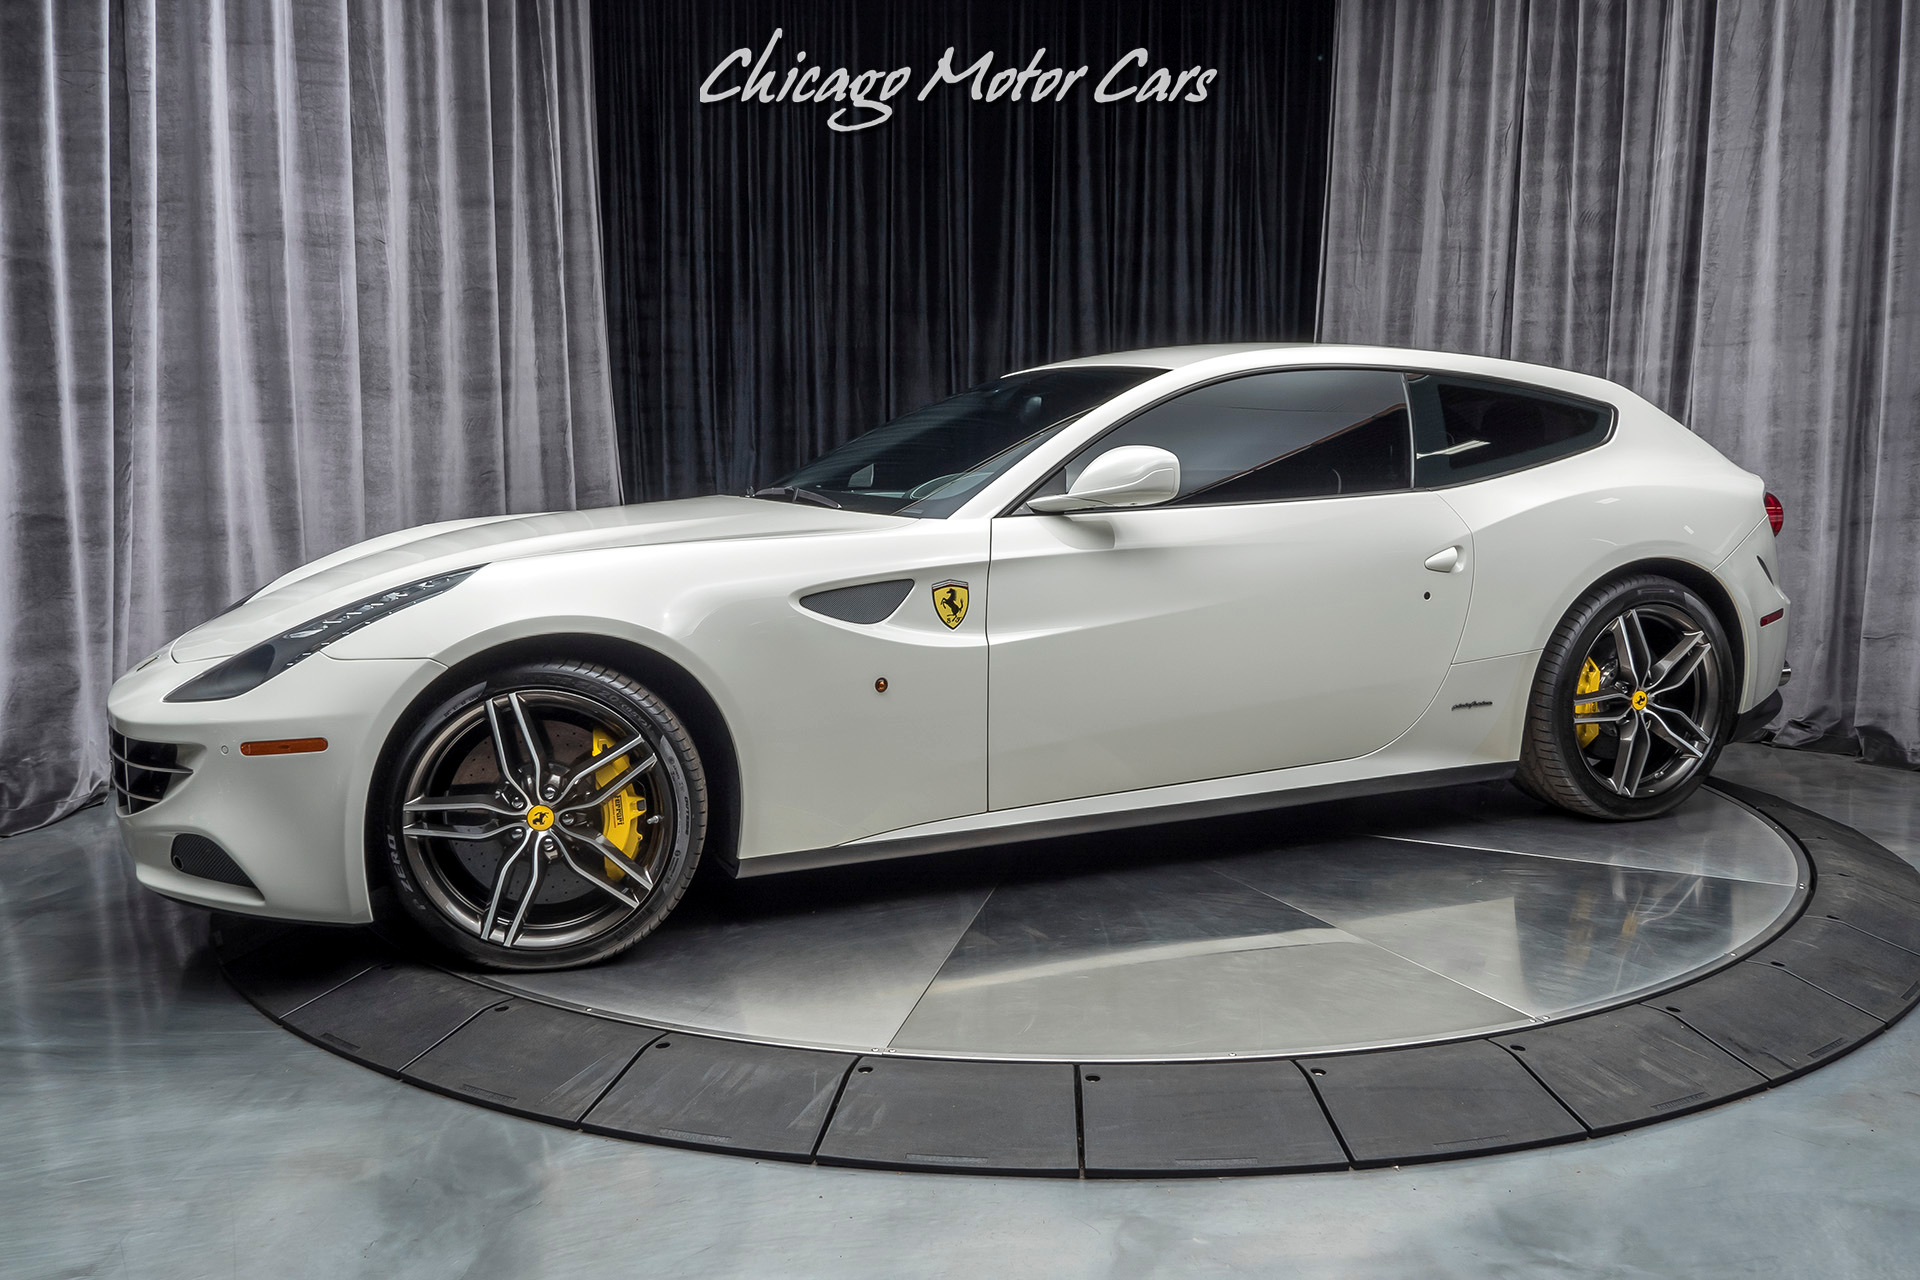 Used 2016 Ferrari Ff Hatchback Diamond Stitched Seats Unique Build For Sale Special Pricing Chicago Motor Cars Stock 16477b